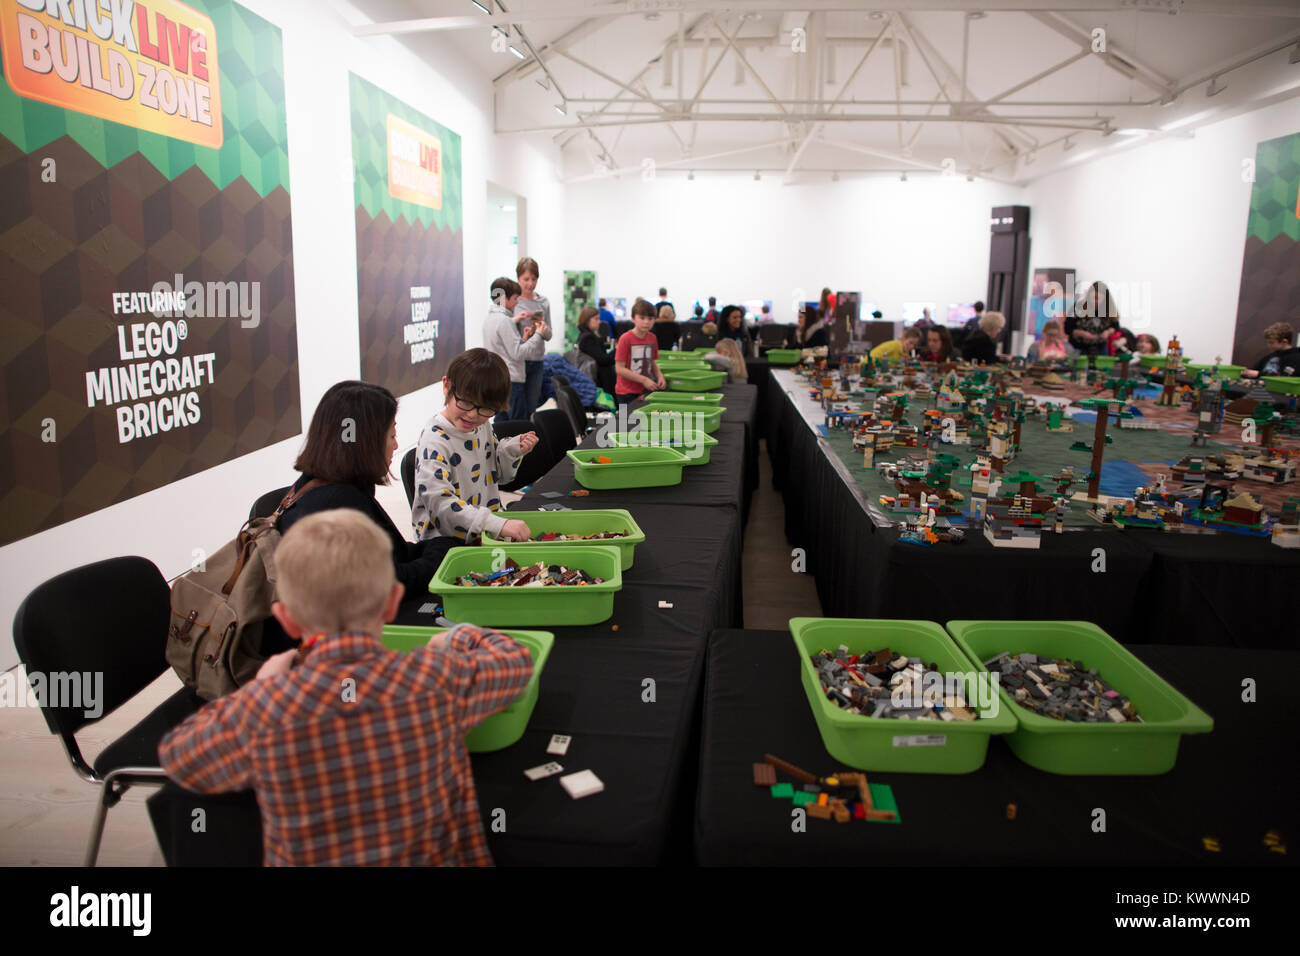 BRICKLIVE event, UK's largest event celebrating LEGO, sculptures, dive into brick pits and play areas with three - Stock Image